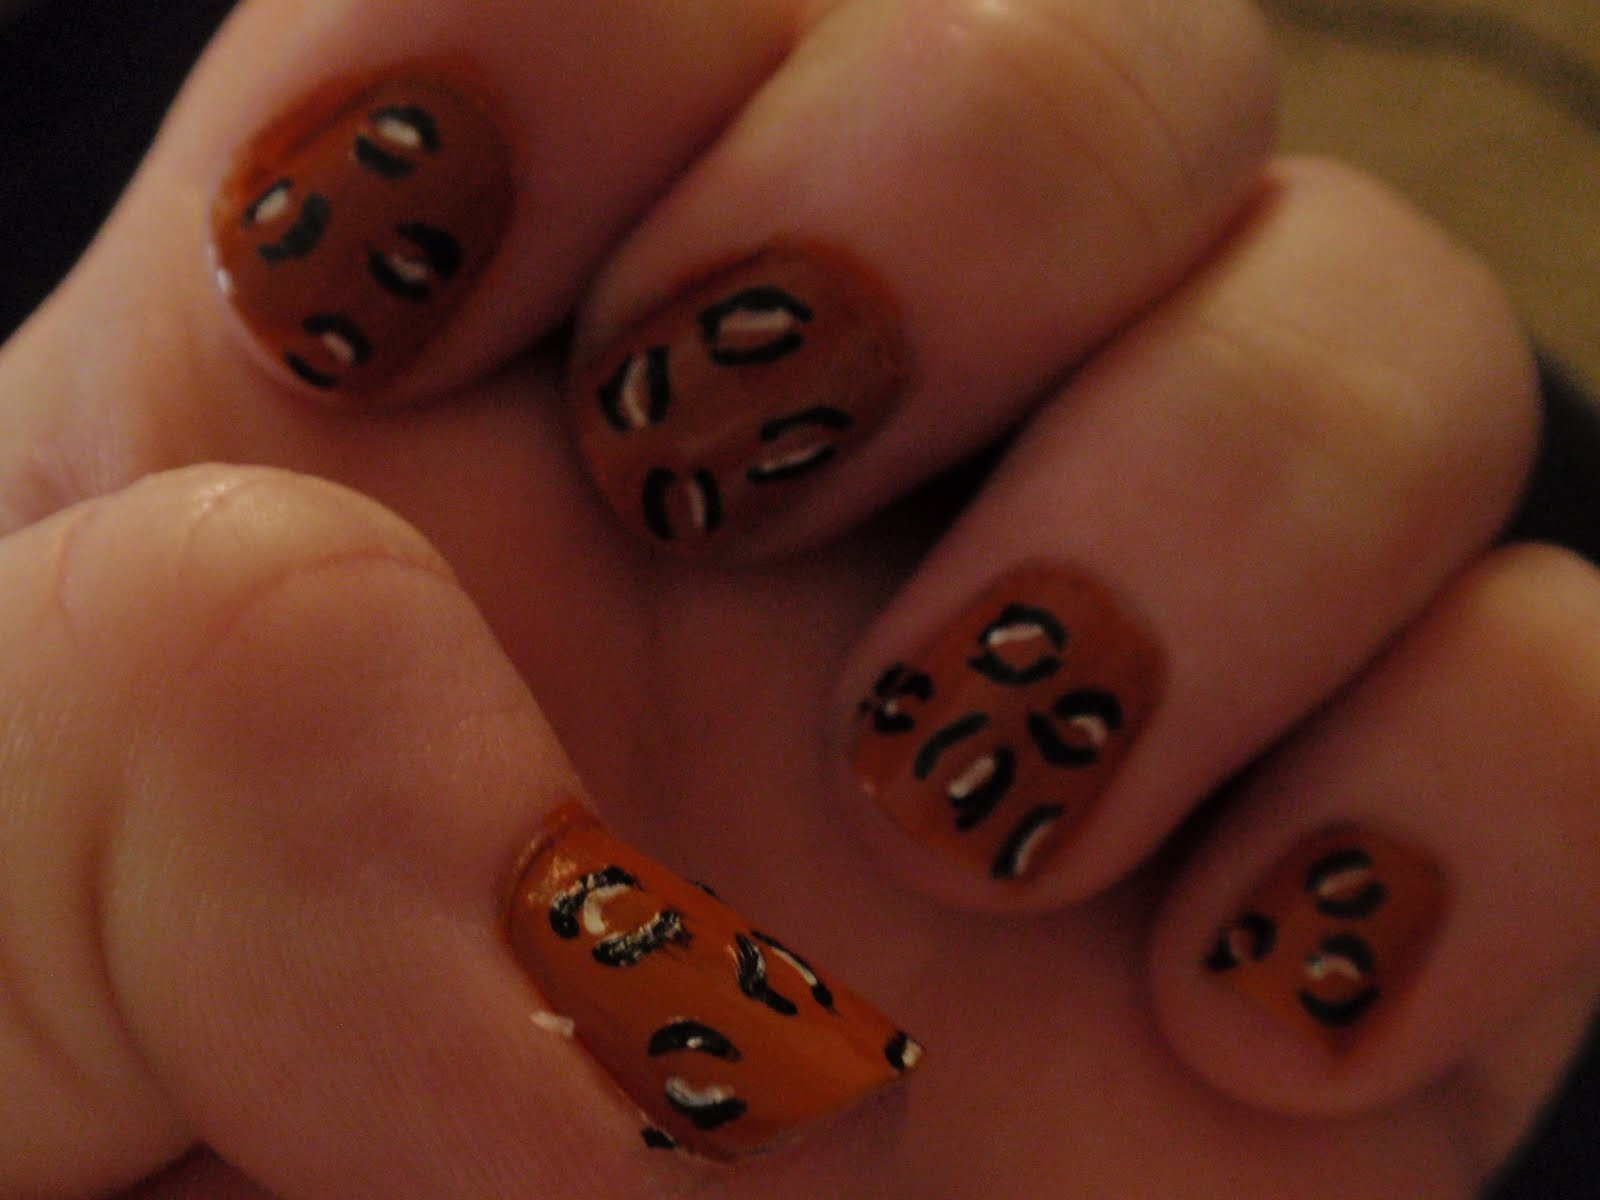 Adventures in LalaLand: Cheetah/Leopard Nails